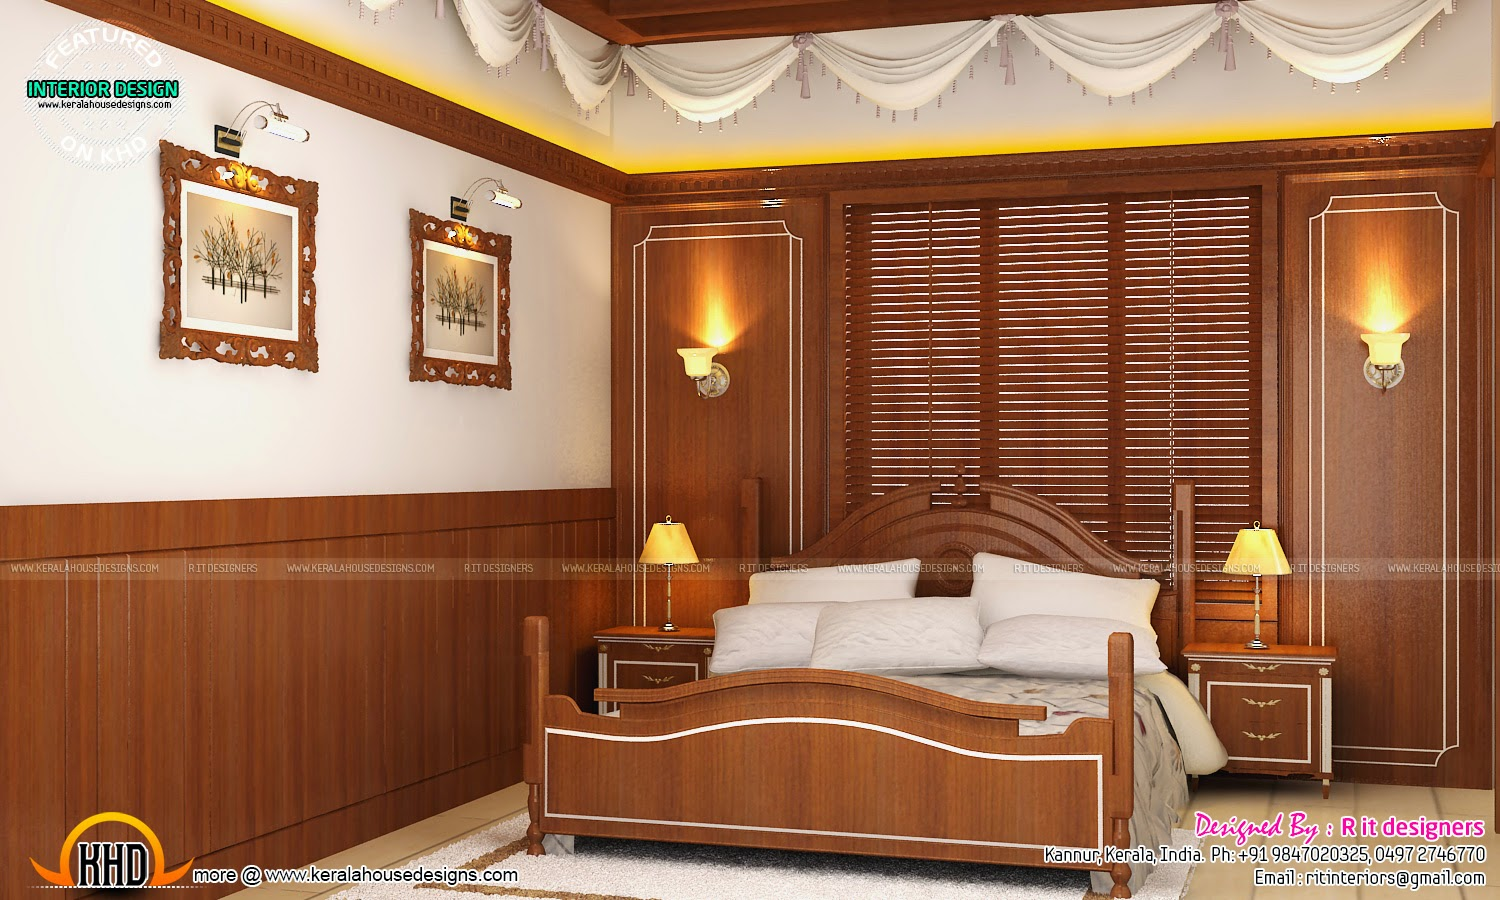 Flat roof house tamilnadu keralahousedesigns for 2 bhk interior decoration pictures